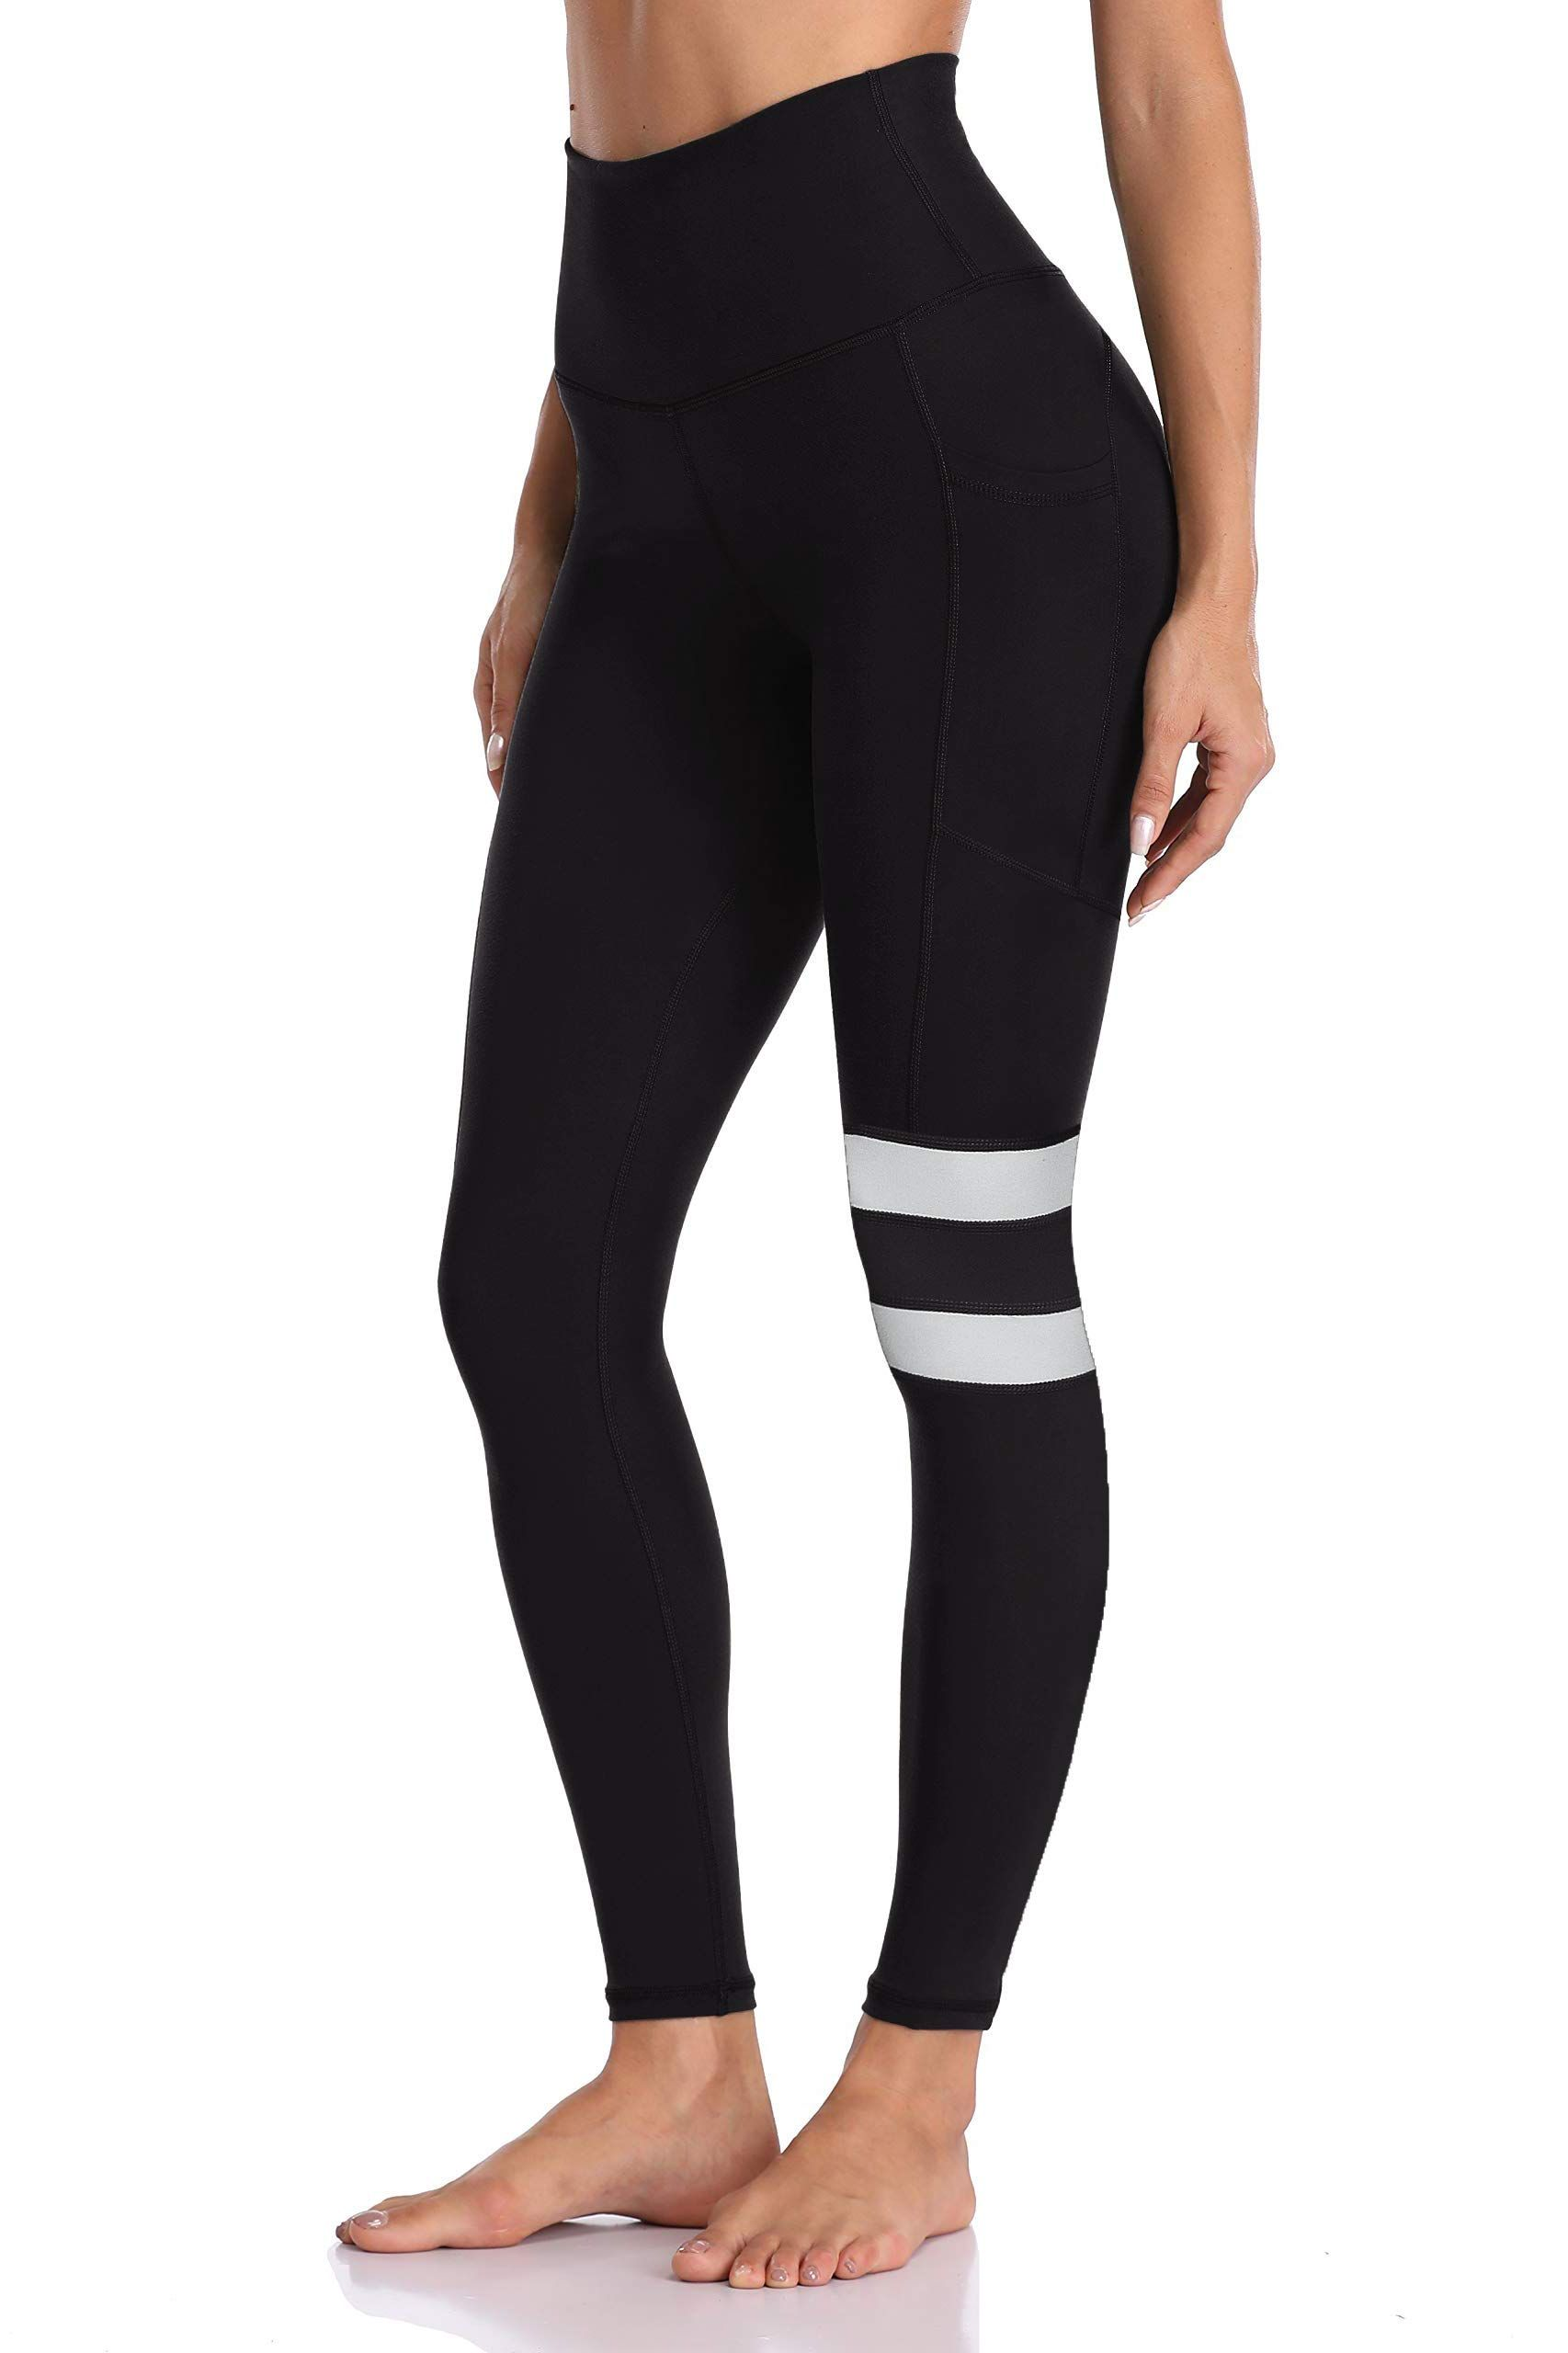 10+ Womens exercise capris with pockets ideas in 2021